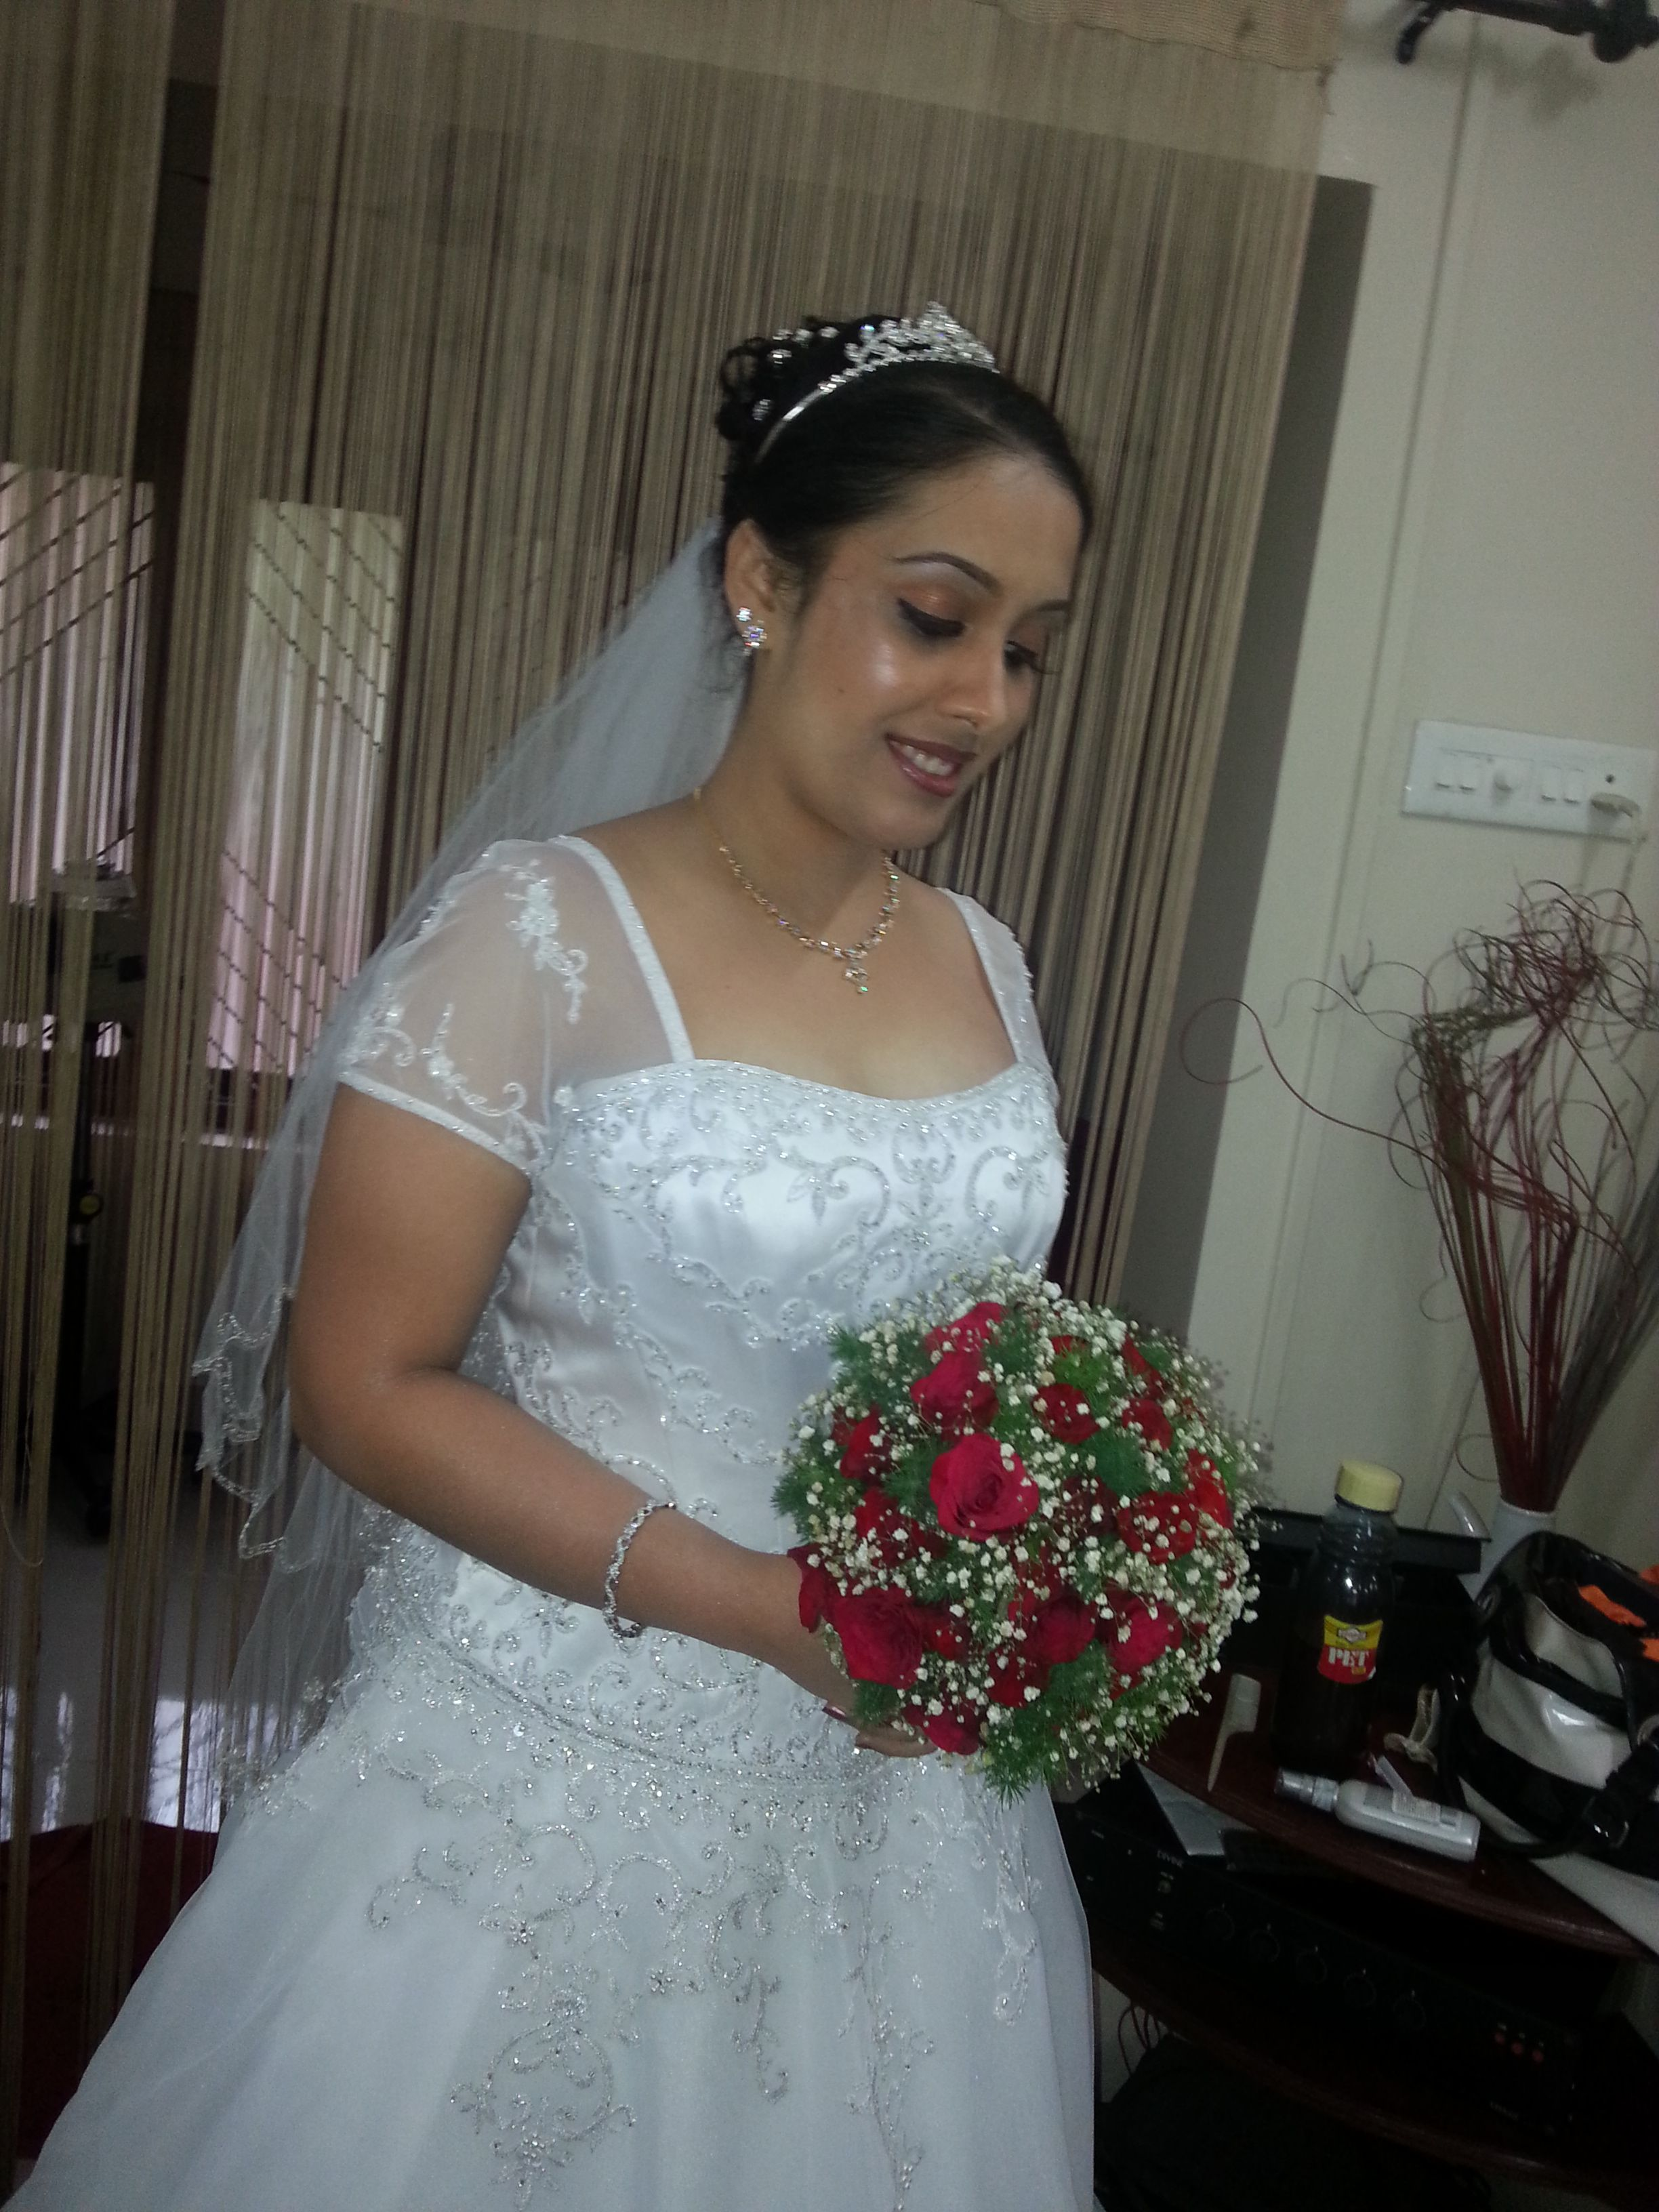 This White Wedding Dress Works Well For A Kerala Christian Bride